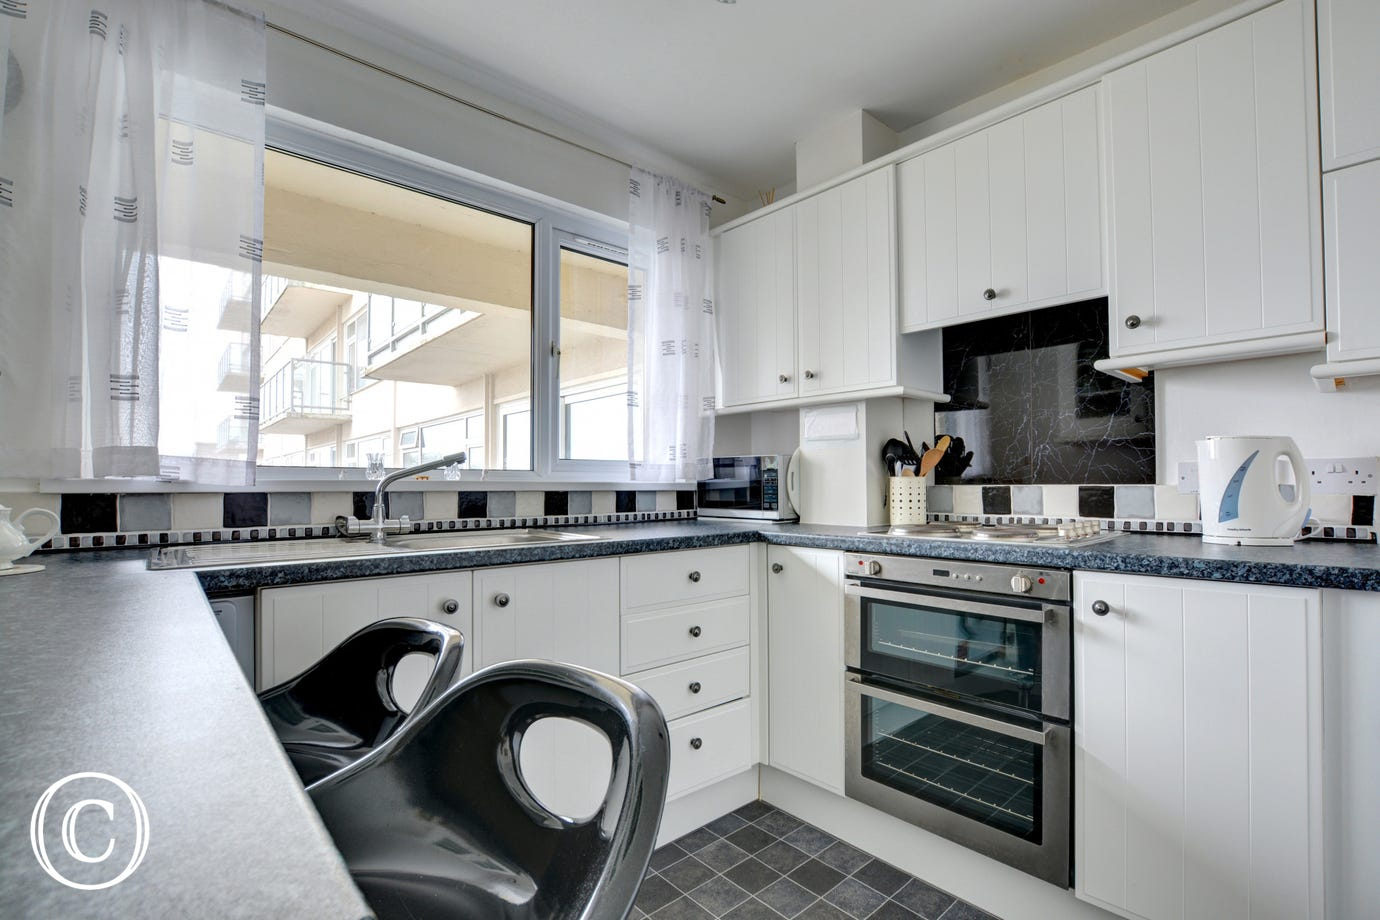 Stylish kitchen at this self catering apartment with great views of North Beach